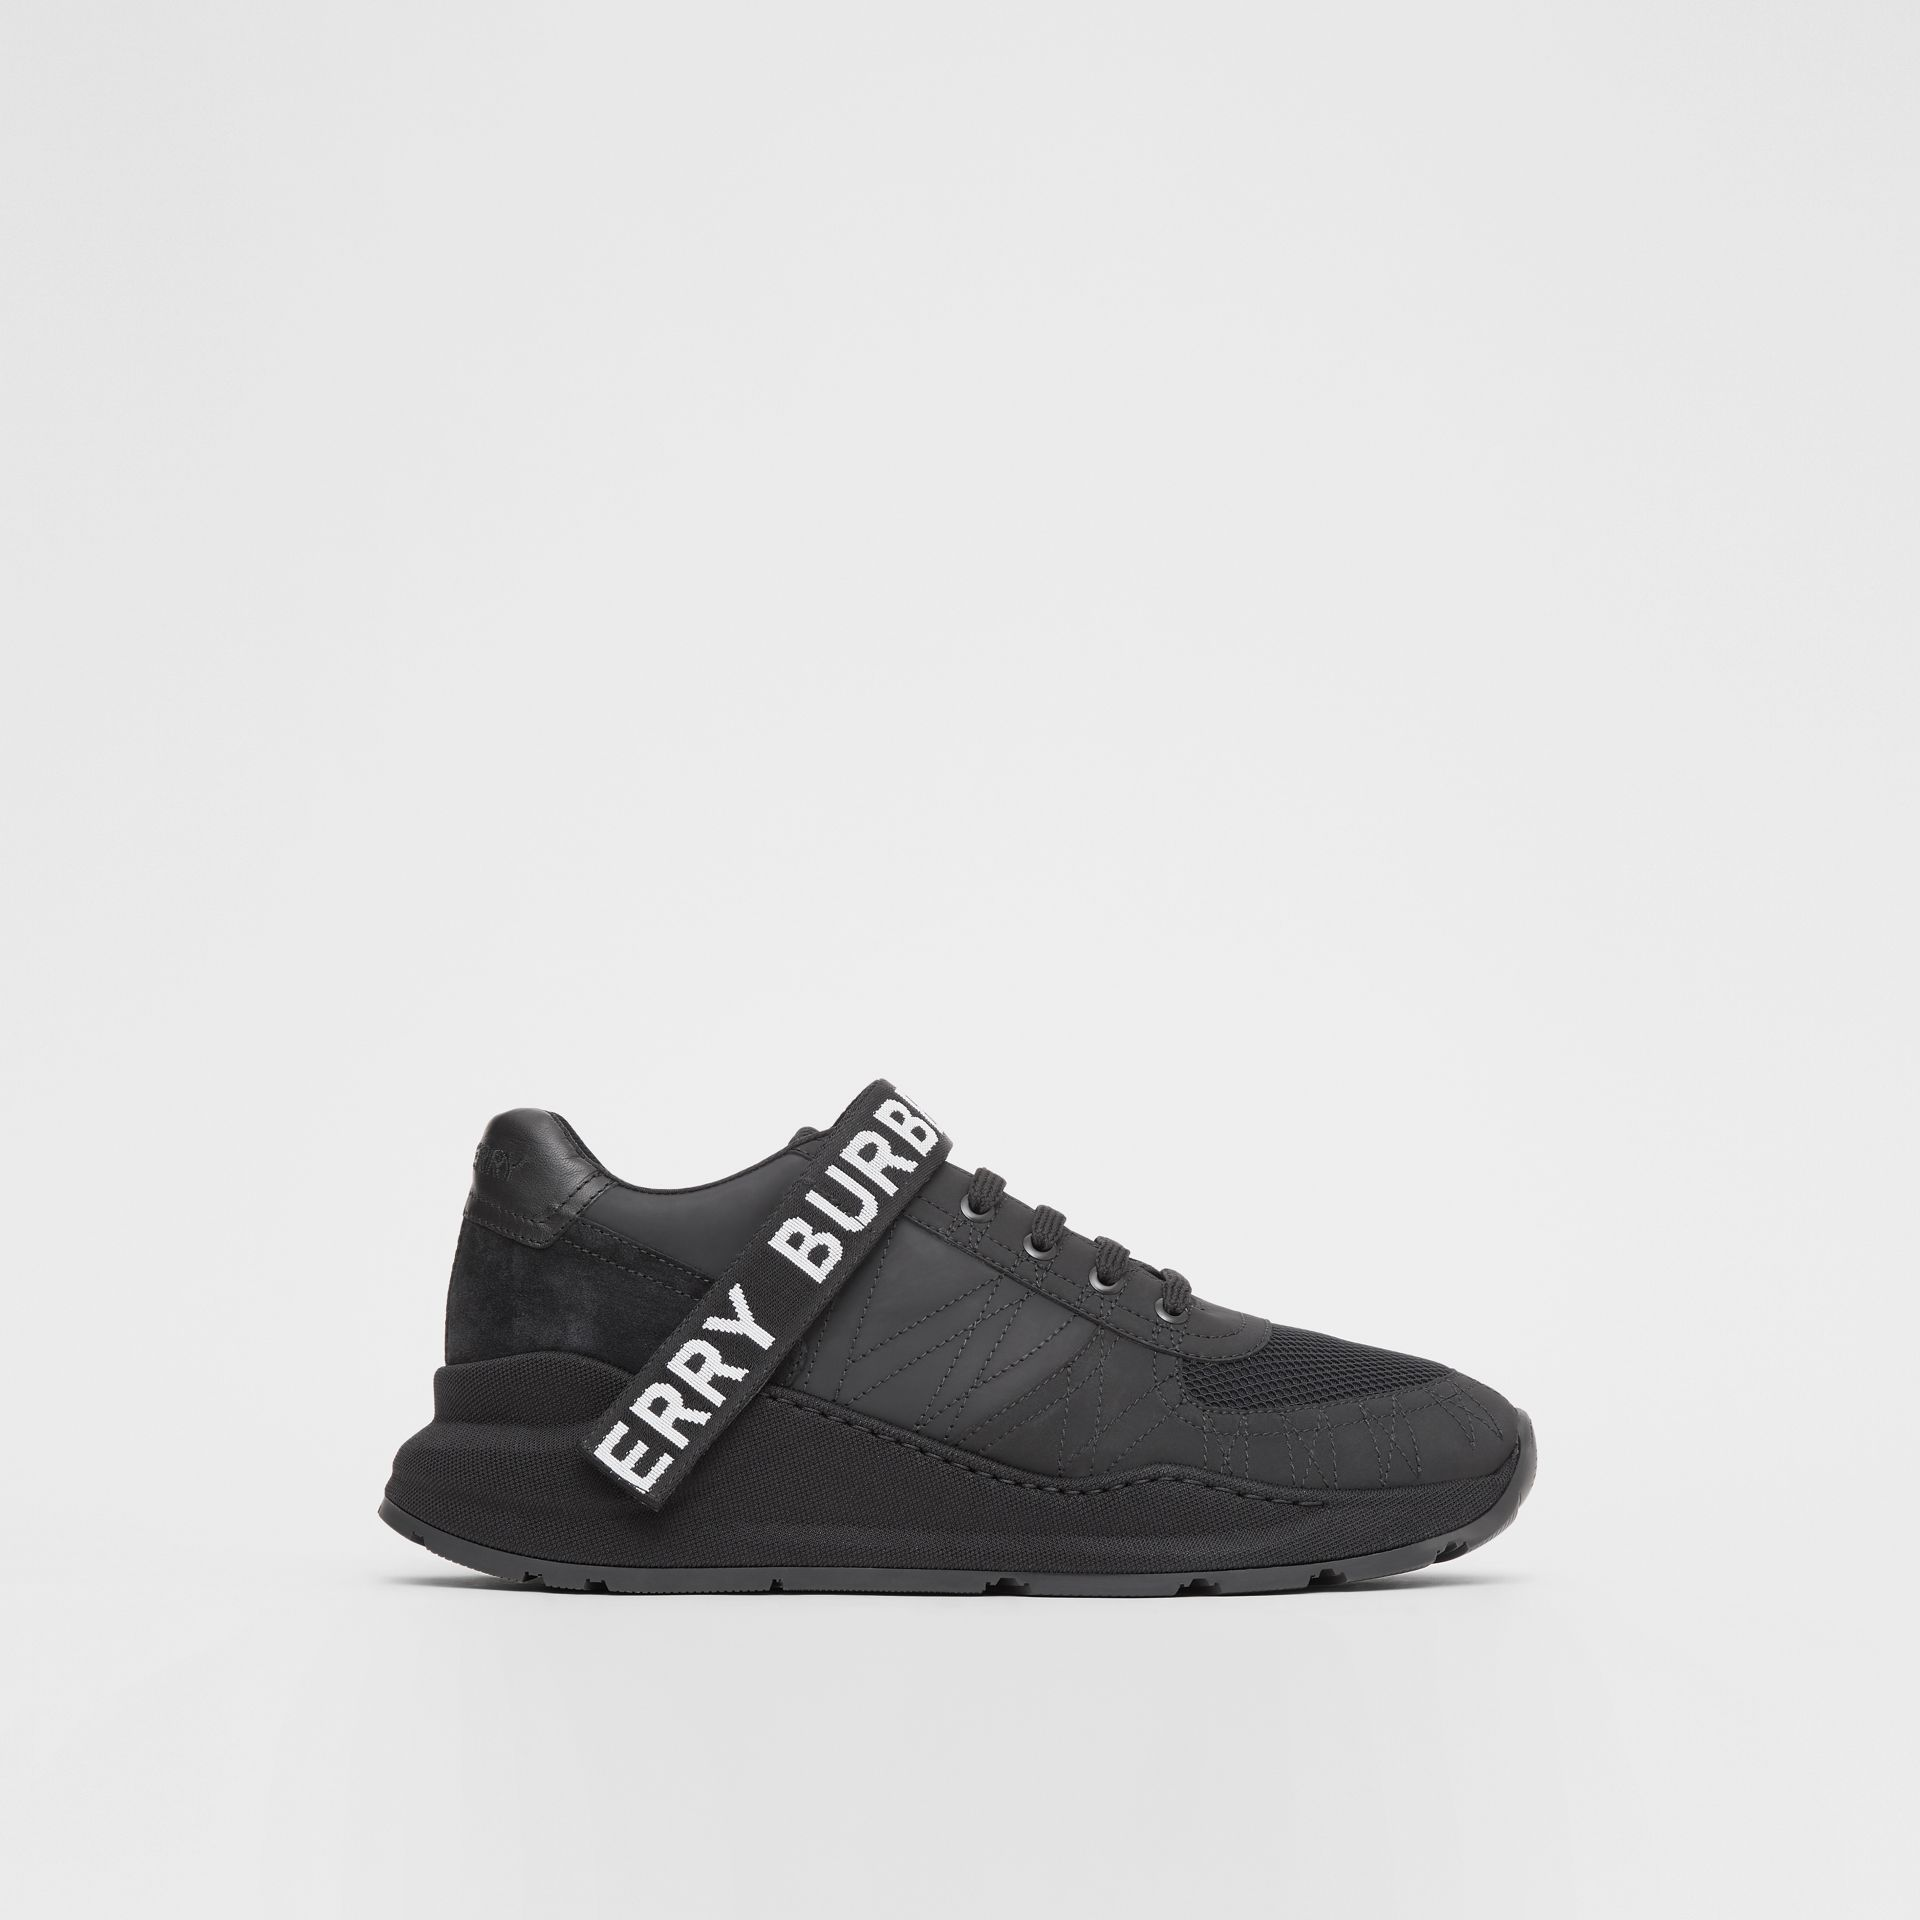 Sneakers en cuir, nubuck et filet avec logo (Noir) - Homme | Burberry - photo de la galerie 5